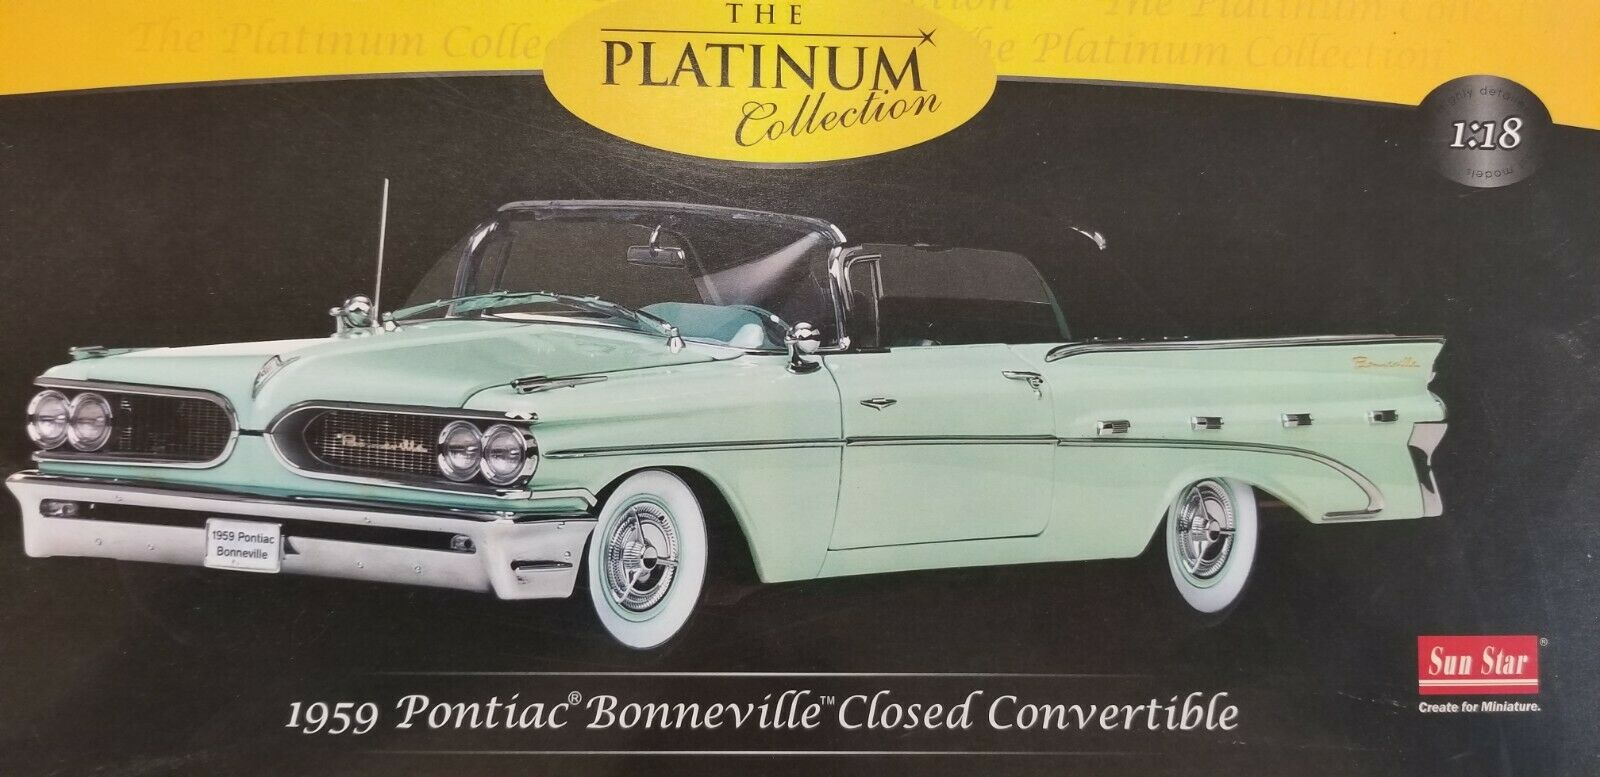 1959 PONTIAC BONNEVILLE closed convertible La Platinum Collection